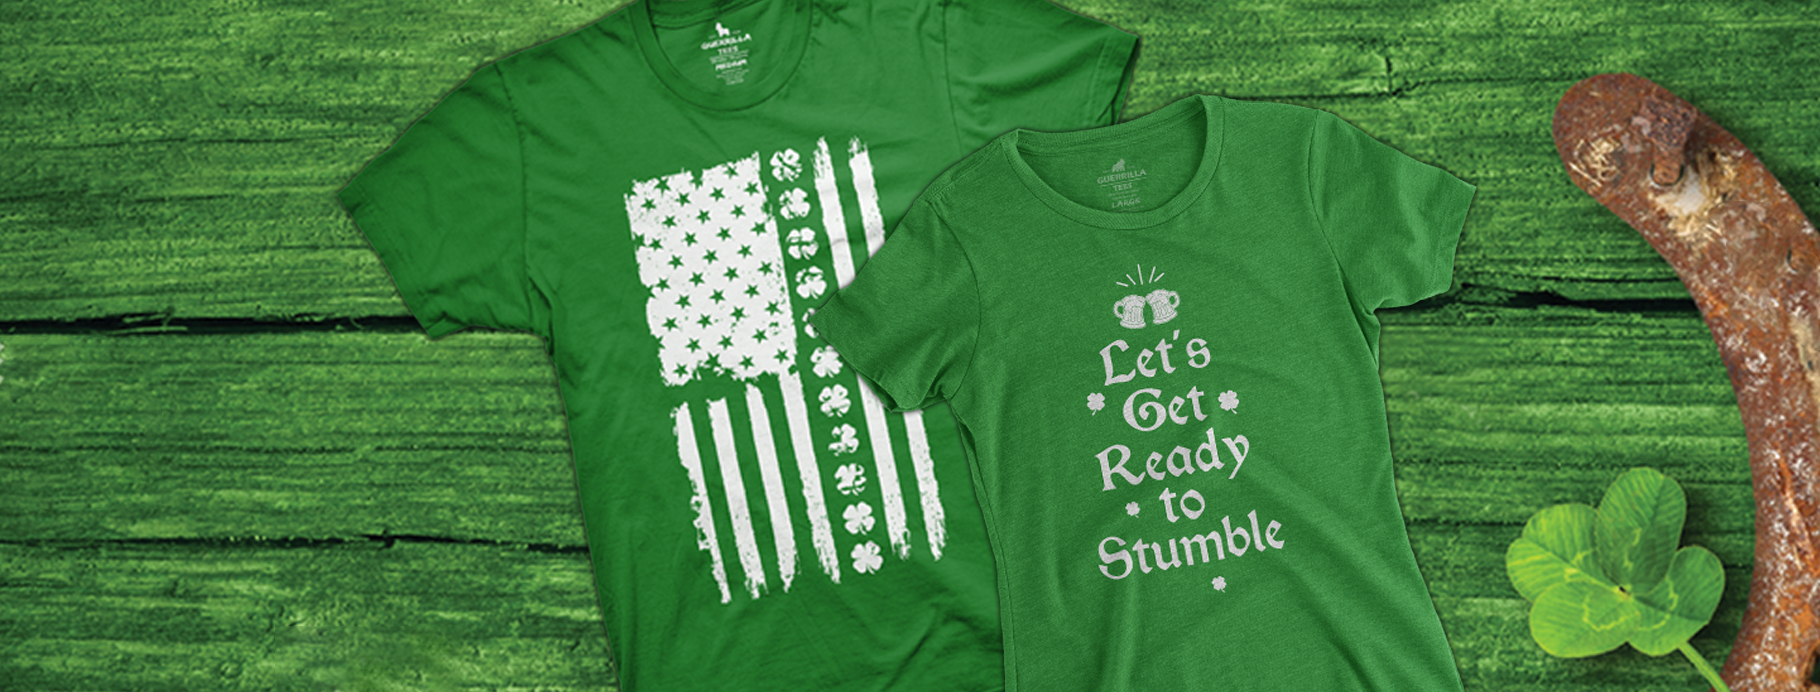 Lucky Looks for your Whole Family.  Shop our St. Patrick's Day Collection | Guerrilla Tees